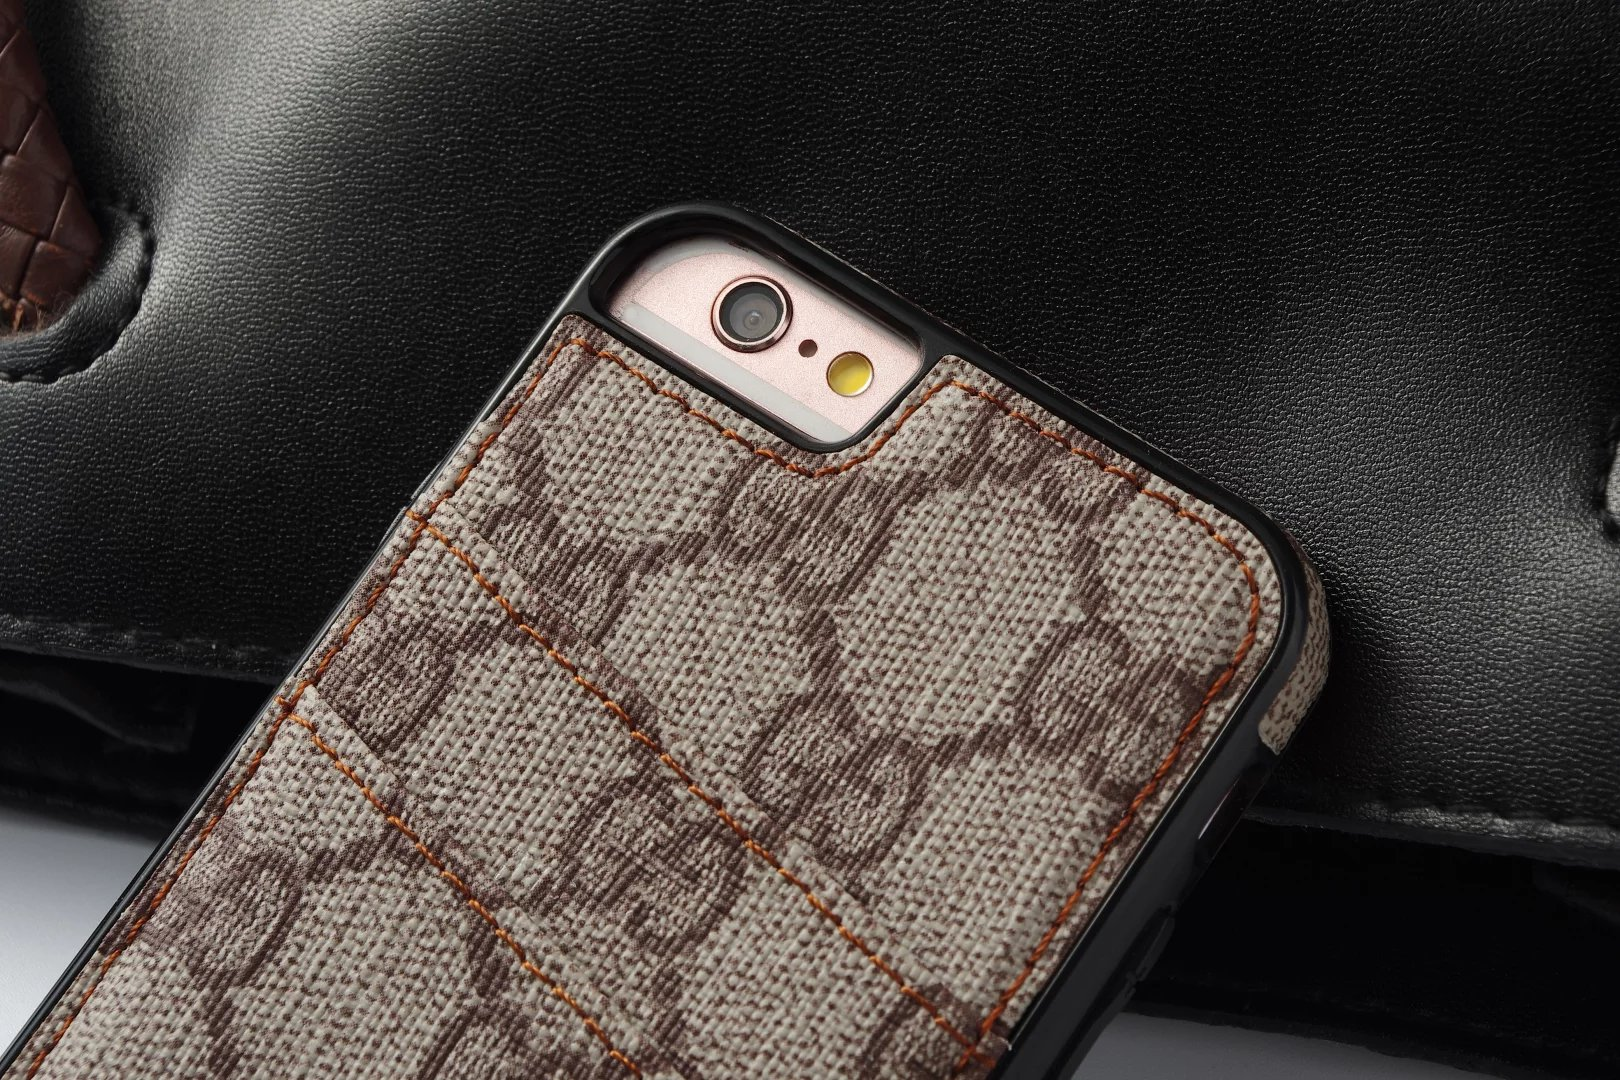 iphone 6 cases best cover iphone 6 fashion iphone6 case apple iphone case iphone case store skins for phone cases custom laptop skins i phone six phone case skins